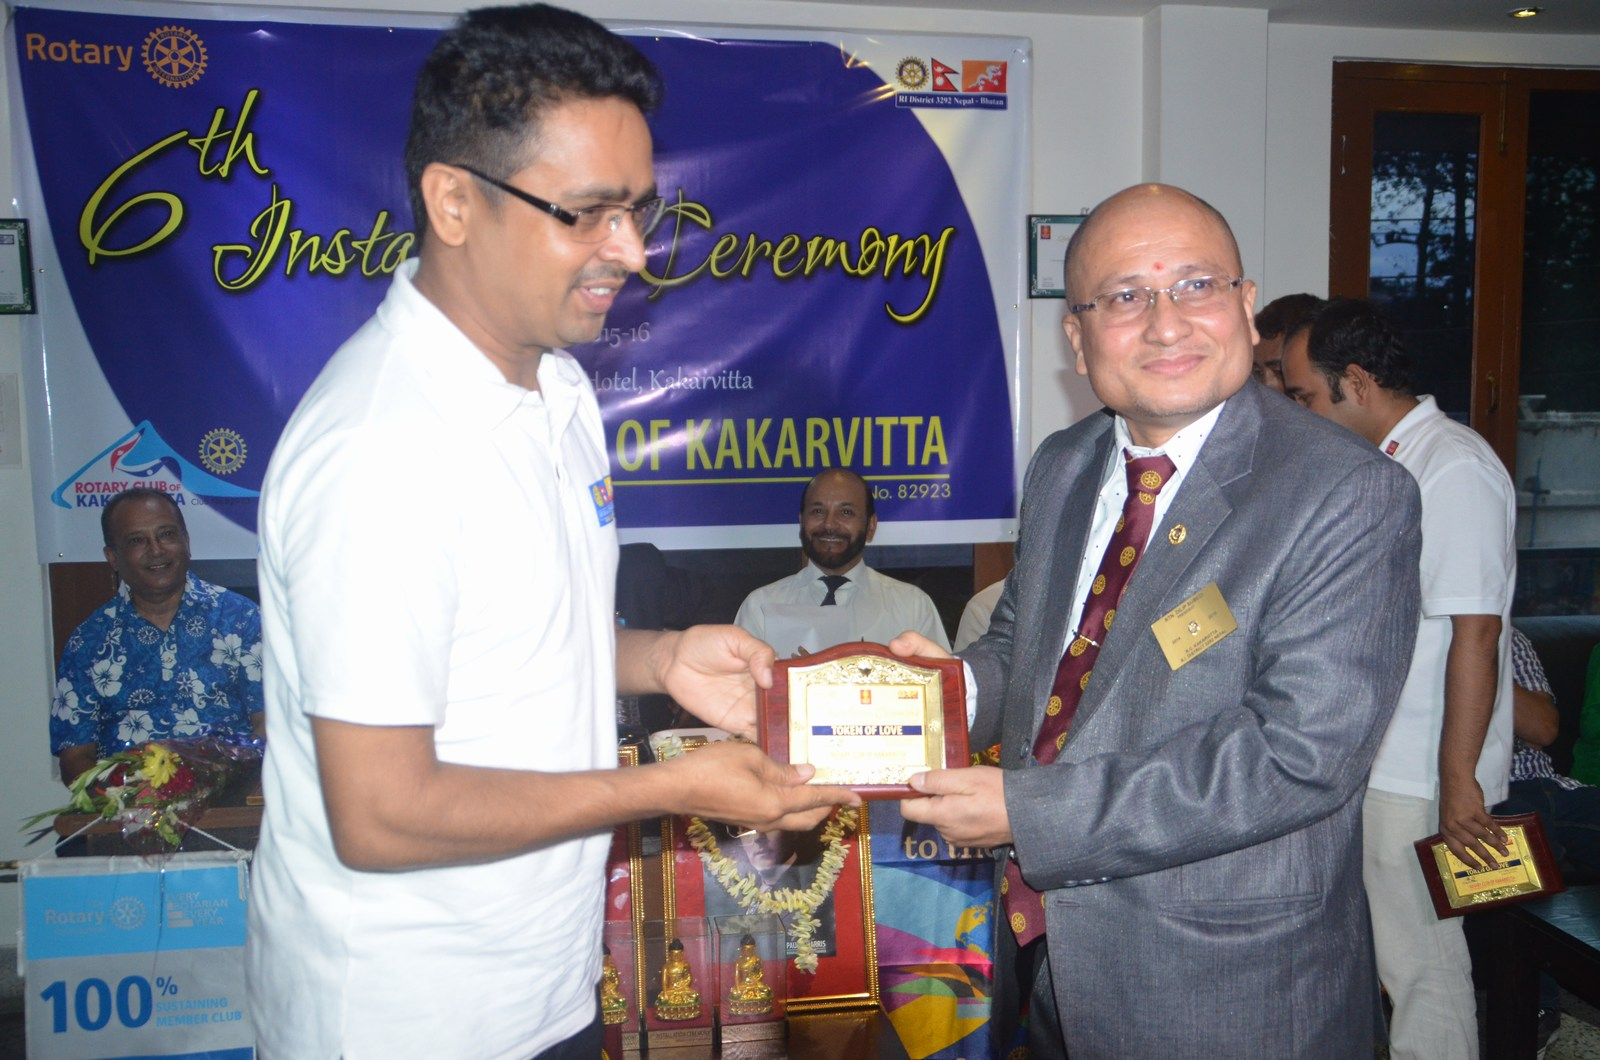 6th Installation Ceremony 2015 16 Rotary Club Of Kakarvitta 25